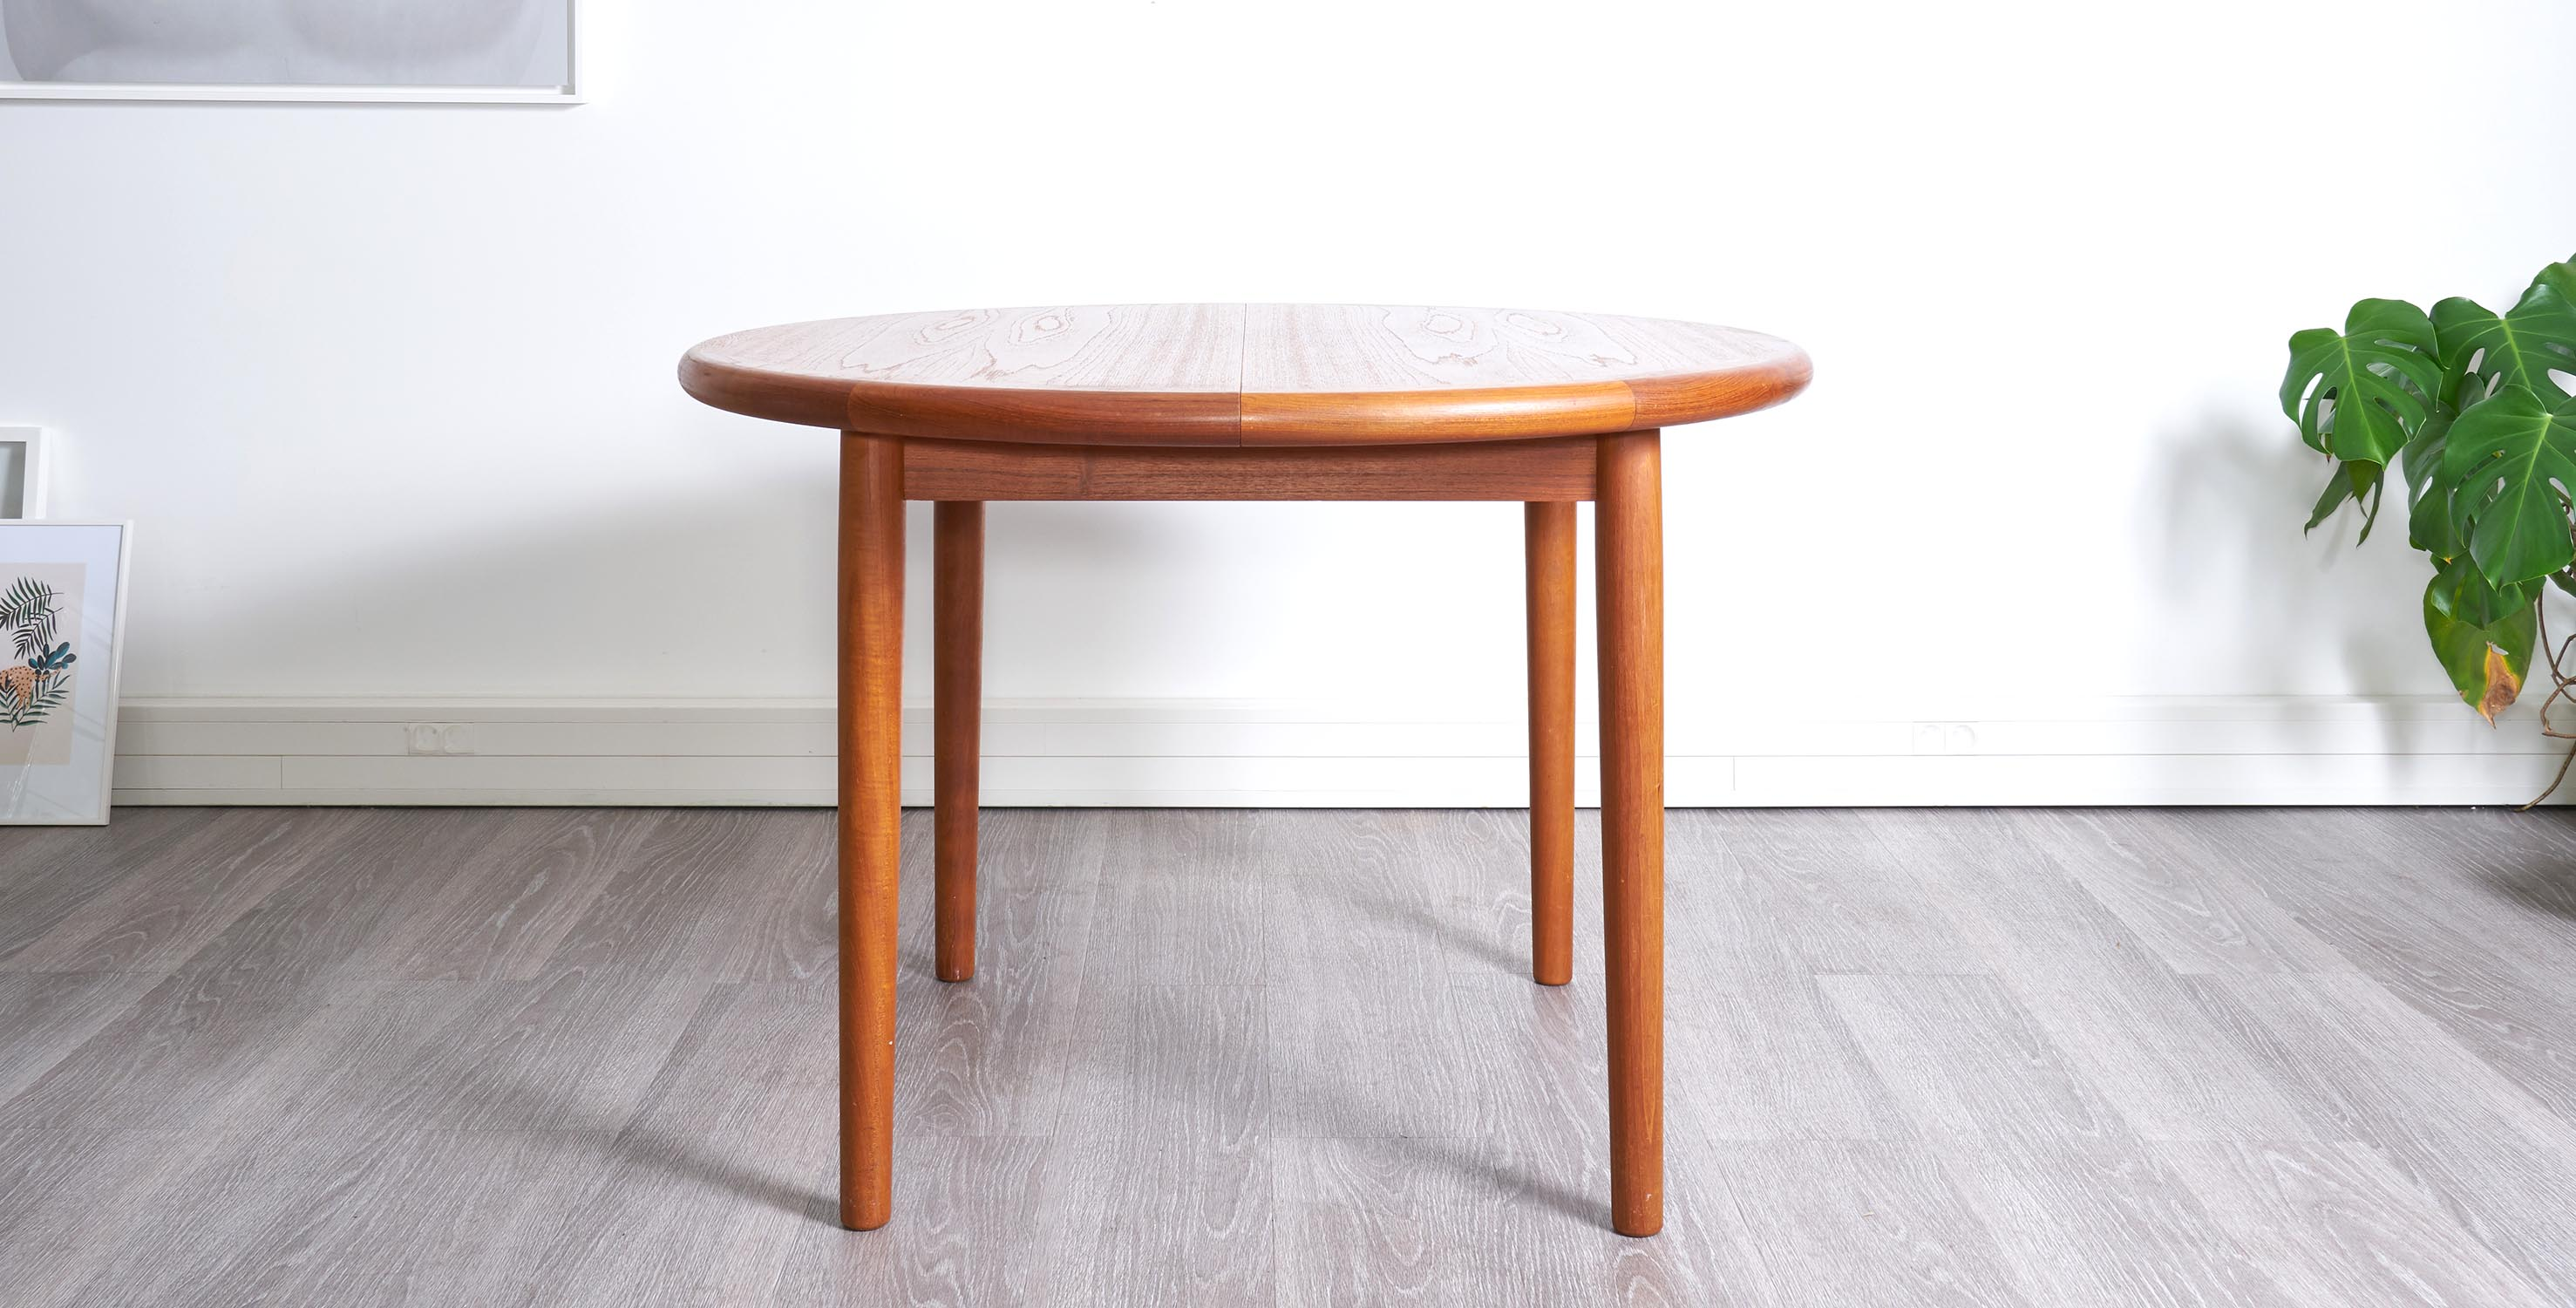 Table manger extensible 1960 style scandinave vendue for Table a manger extensible scandinave